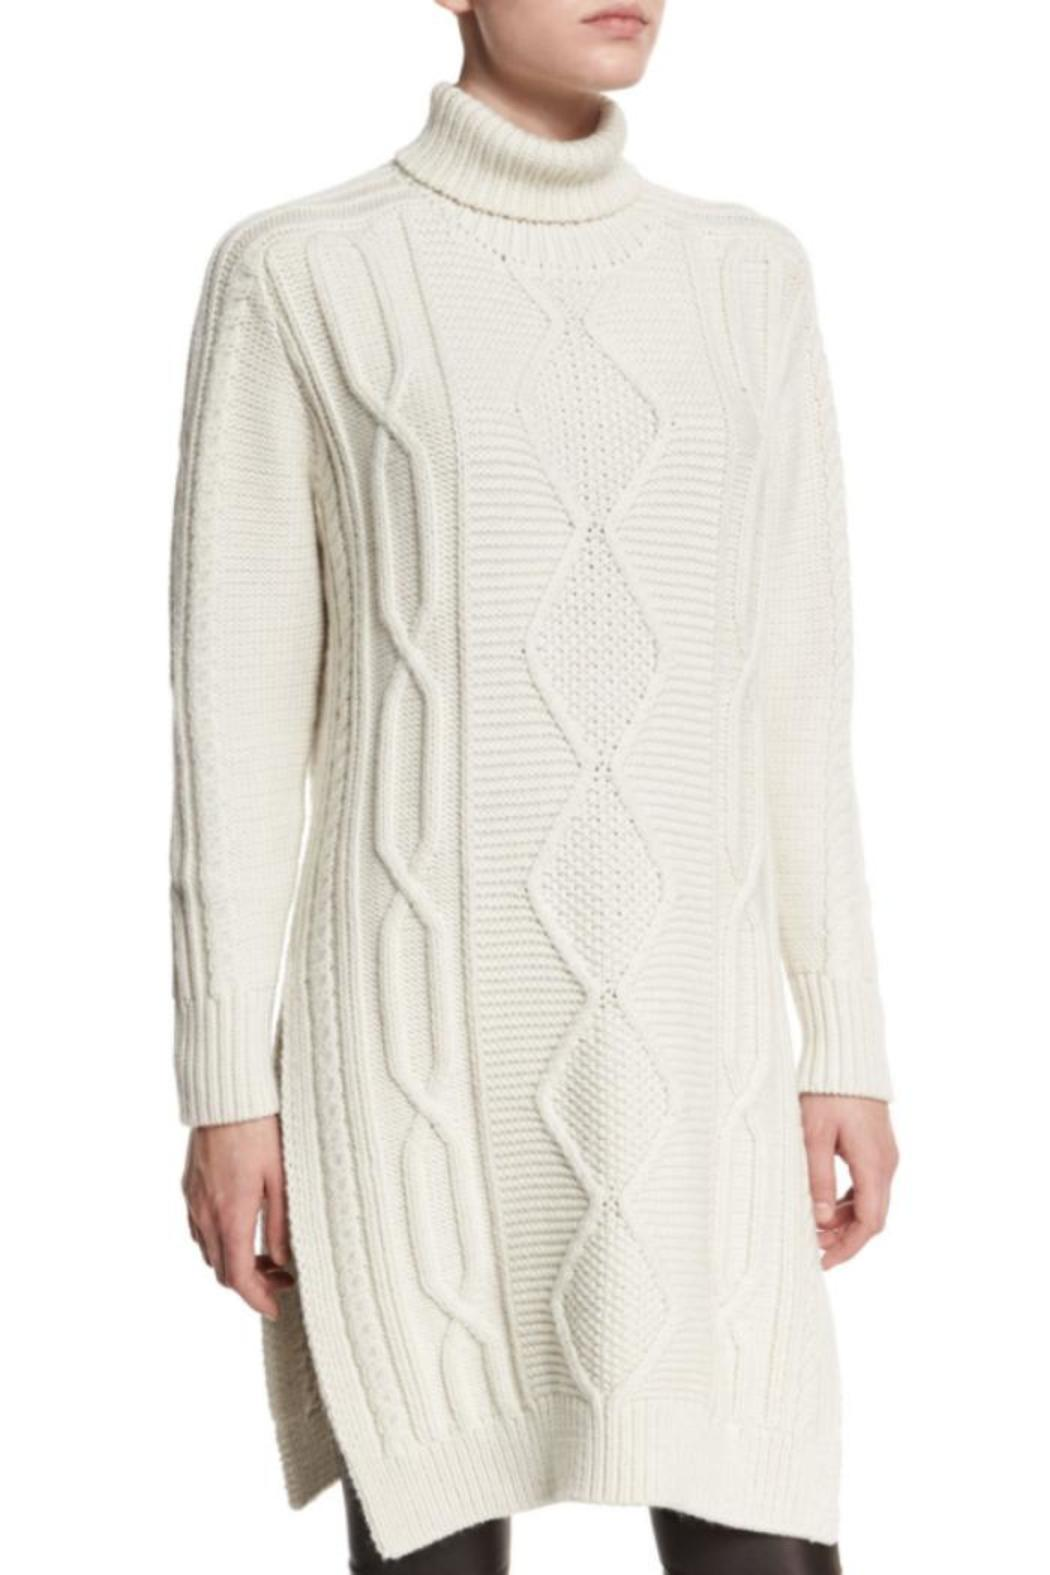 Derek Lam 10 Crosby Turtleneck Sweater Dress - Main Image